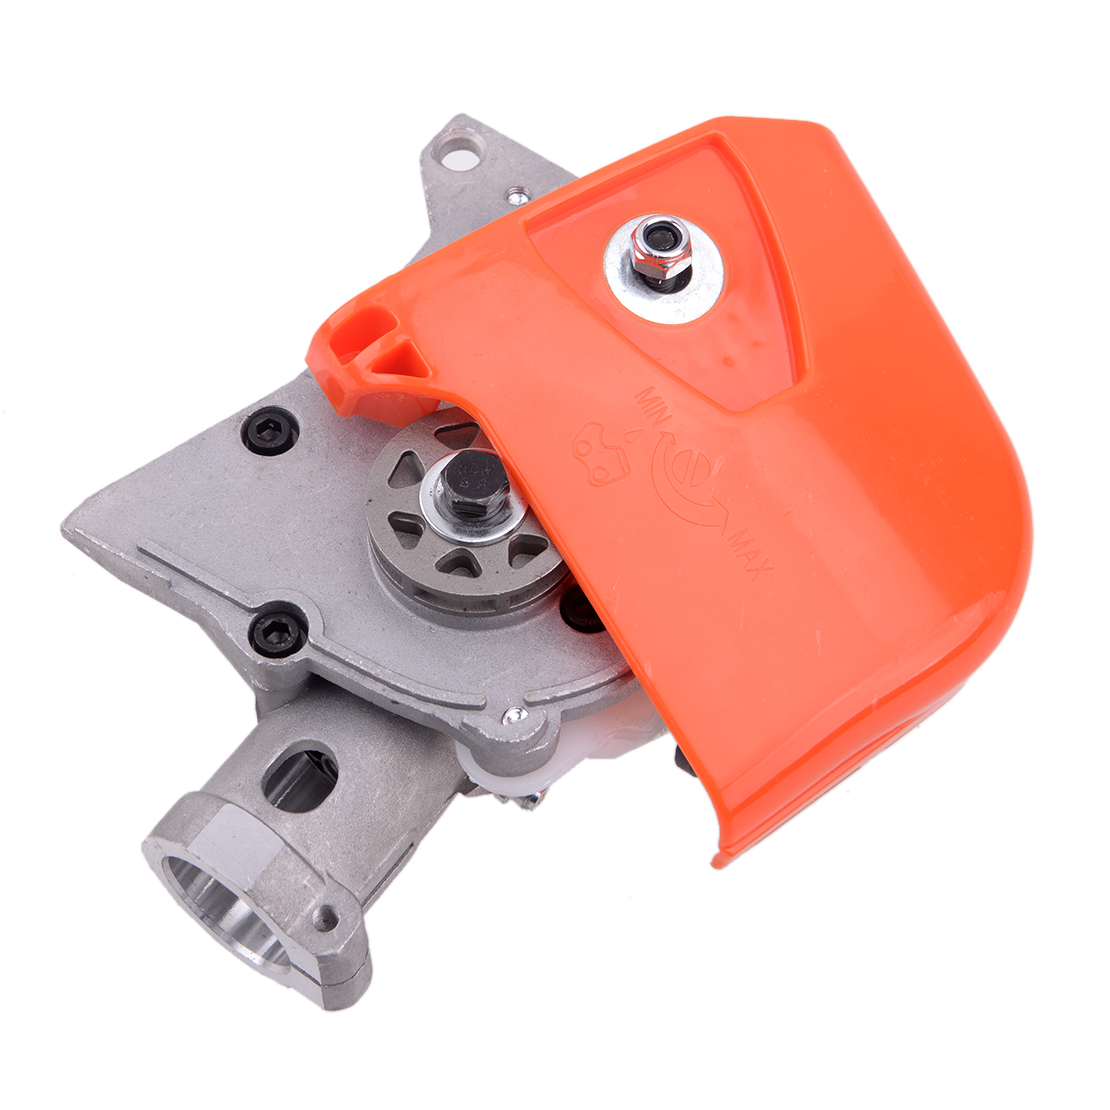 Tools : 4 Teeth Universal 26mm Gearbox Gear Head fit for Pole Saw Tree Cutter Chainsaw